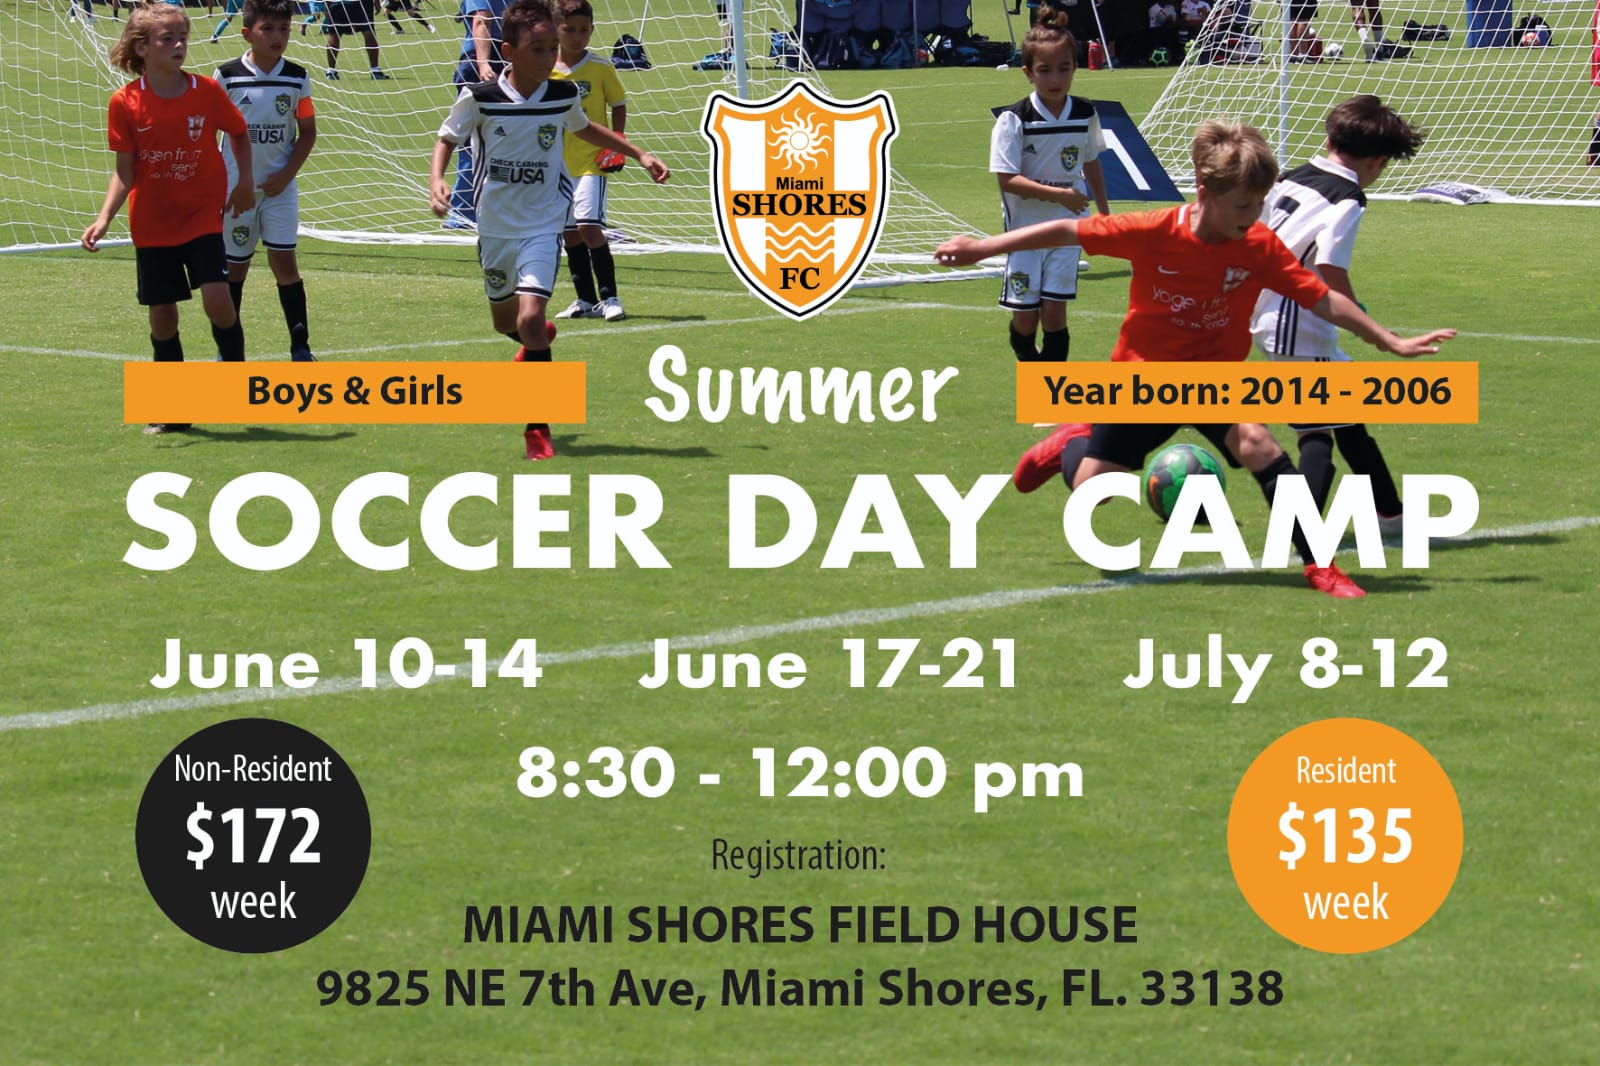 MIAMI SHORES SOCCER SUMMER DAY CAMP